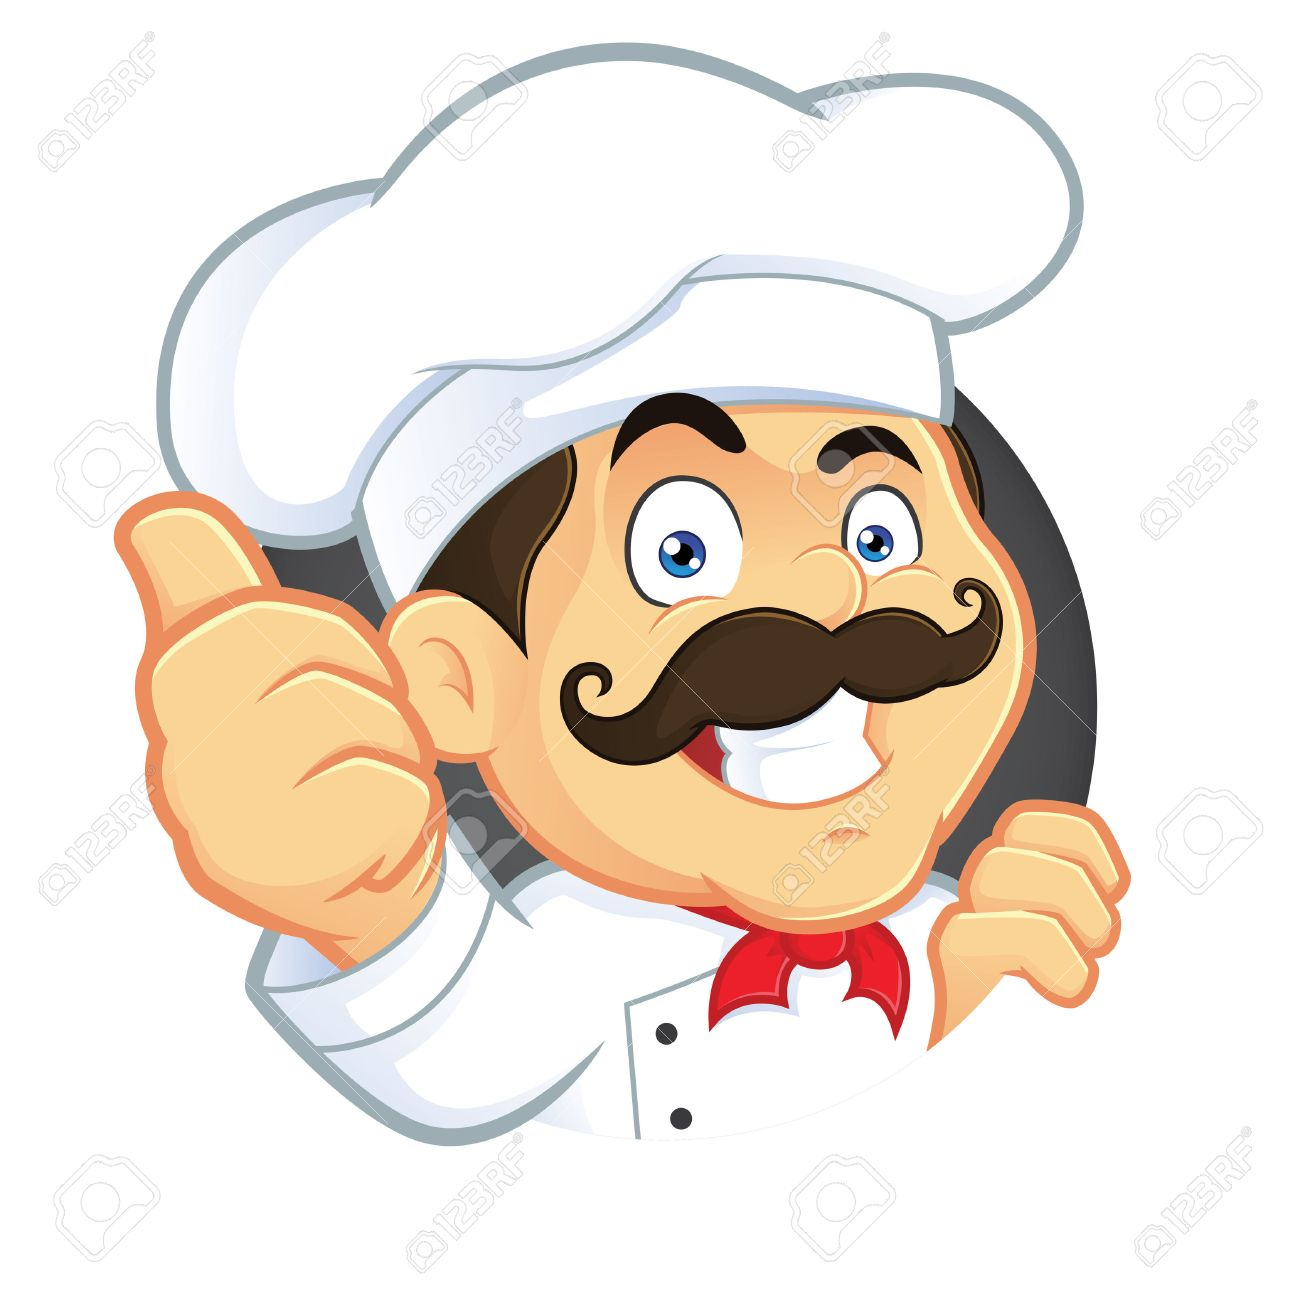 Chef Giving Thumbs Up - 26768416